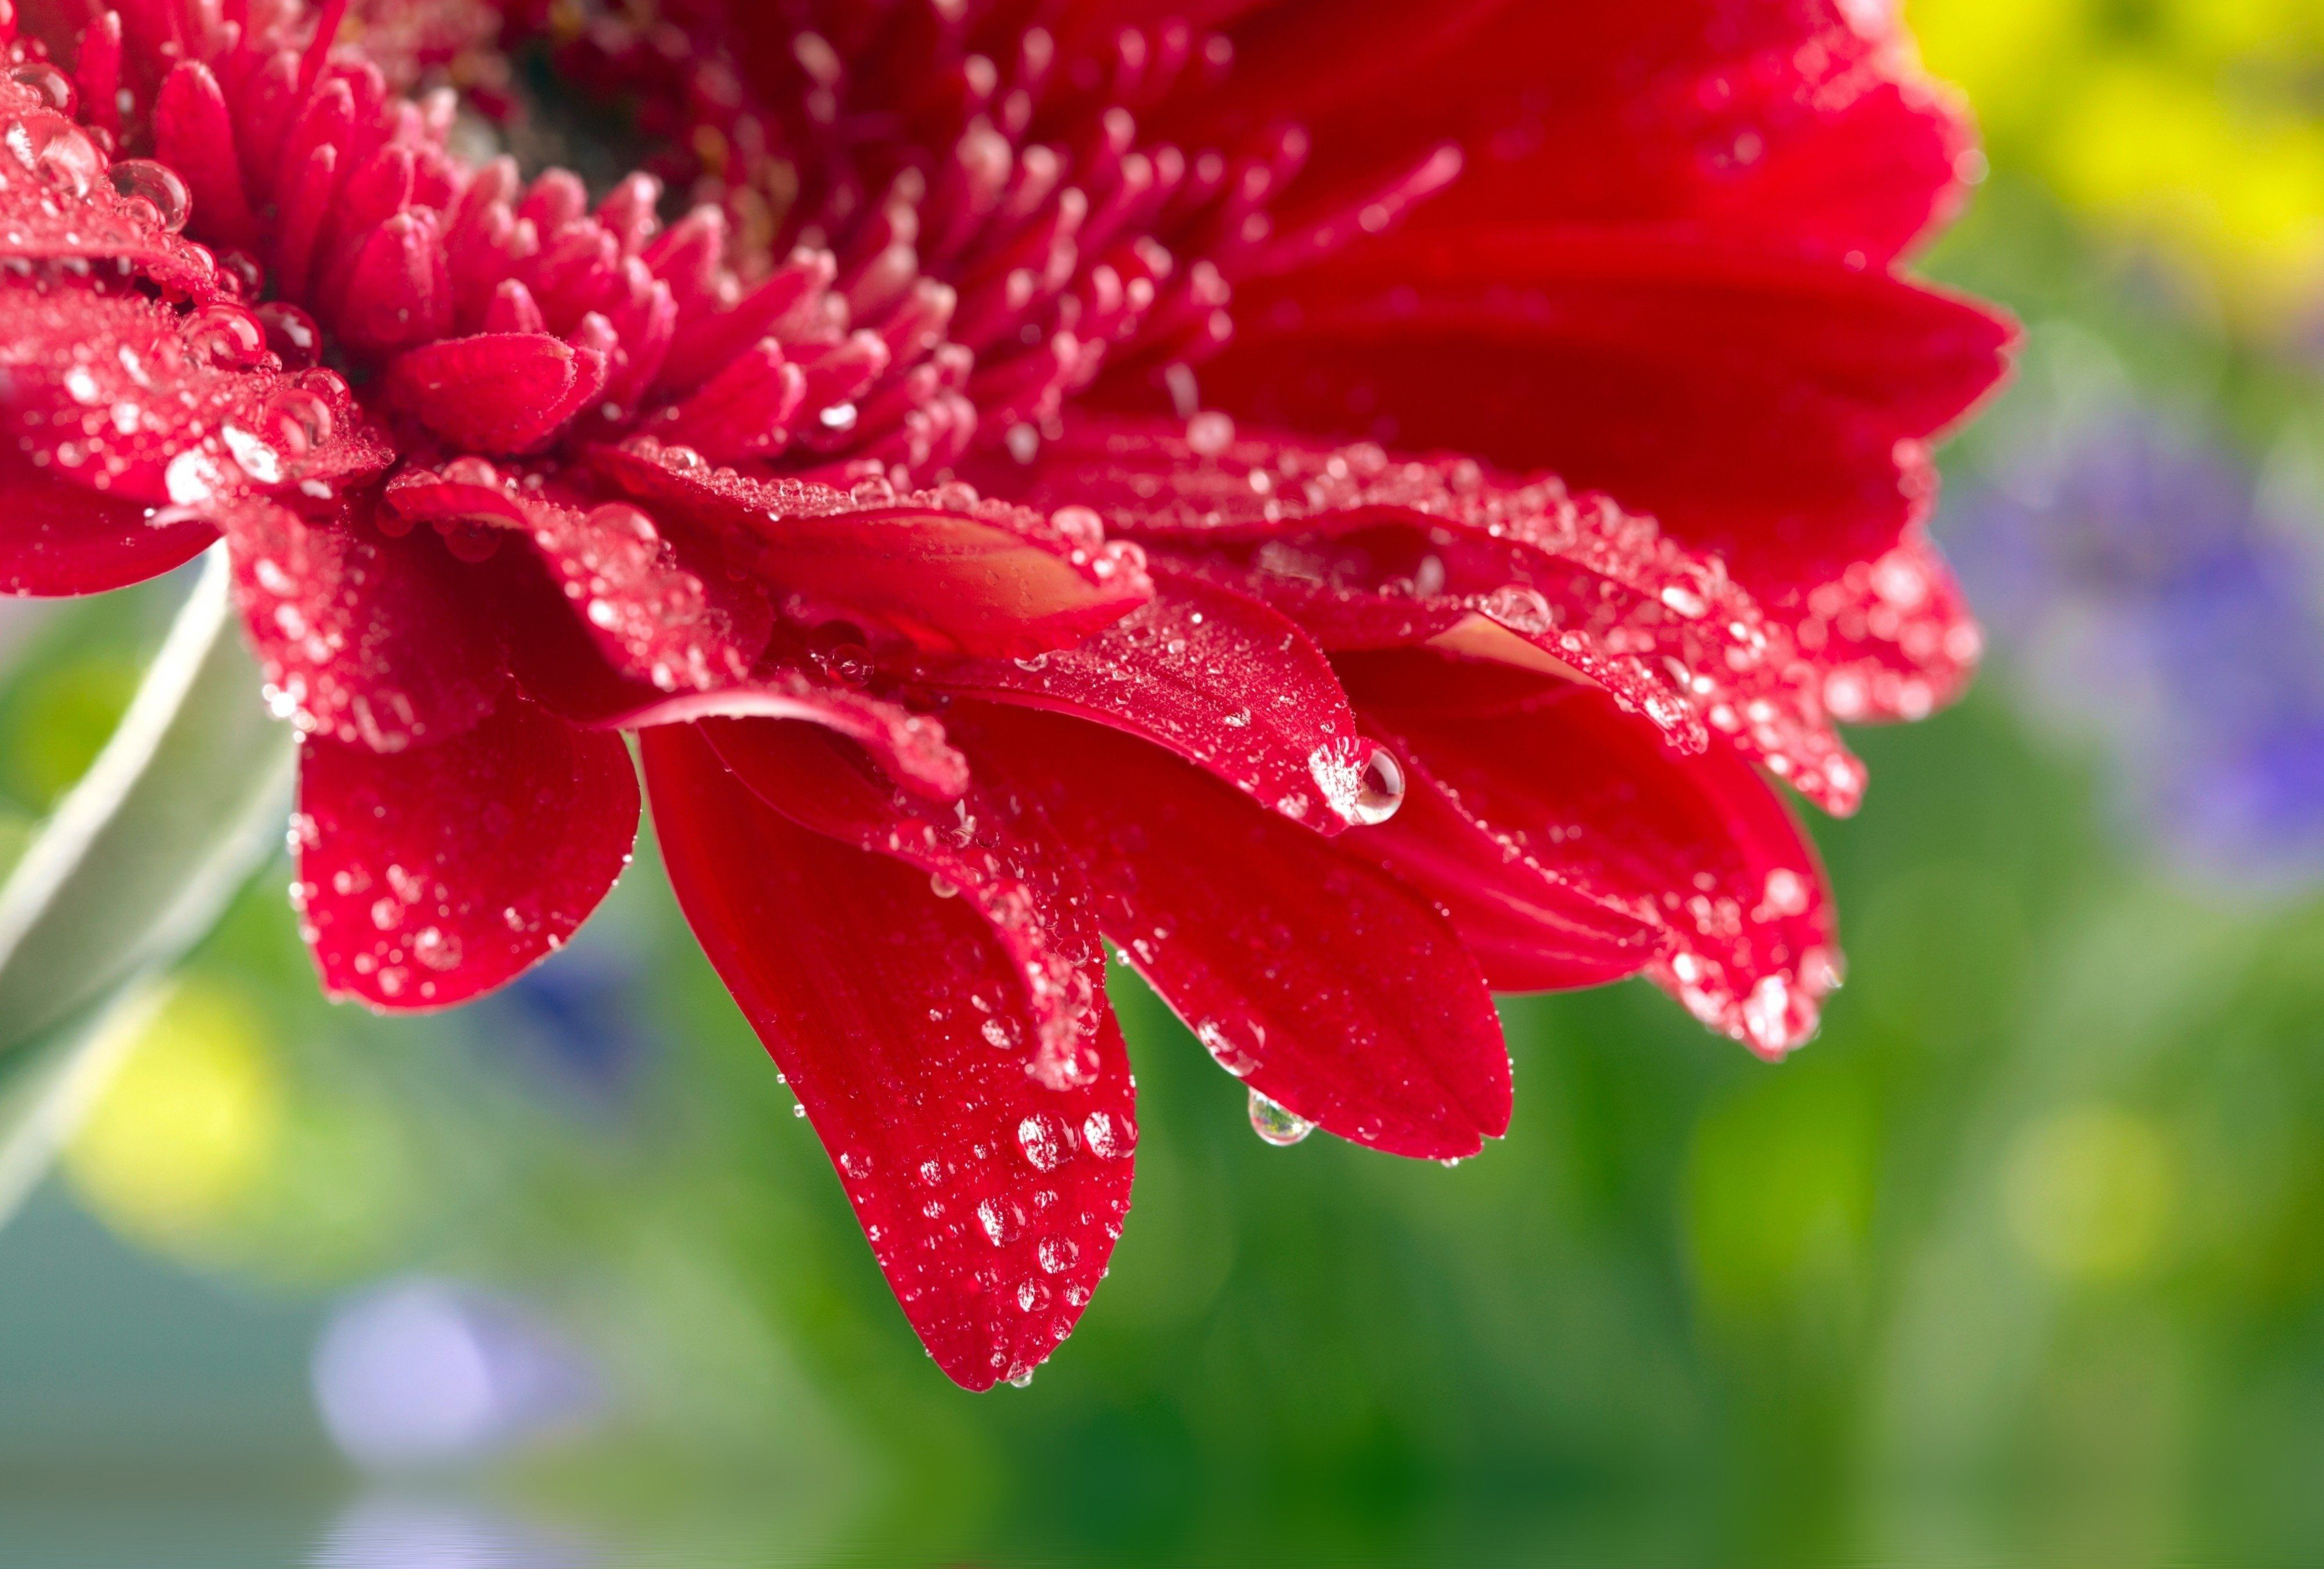 flower water drop wallpapers wallpaperhd.wiki | backgrounds & hd